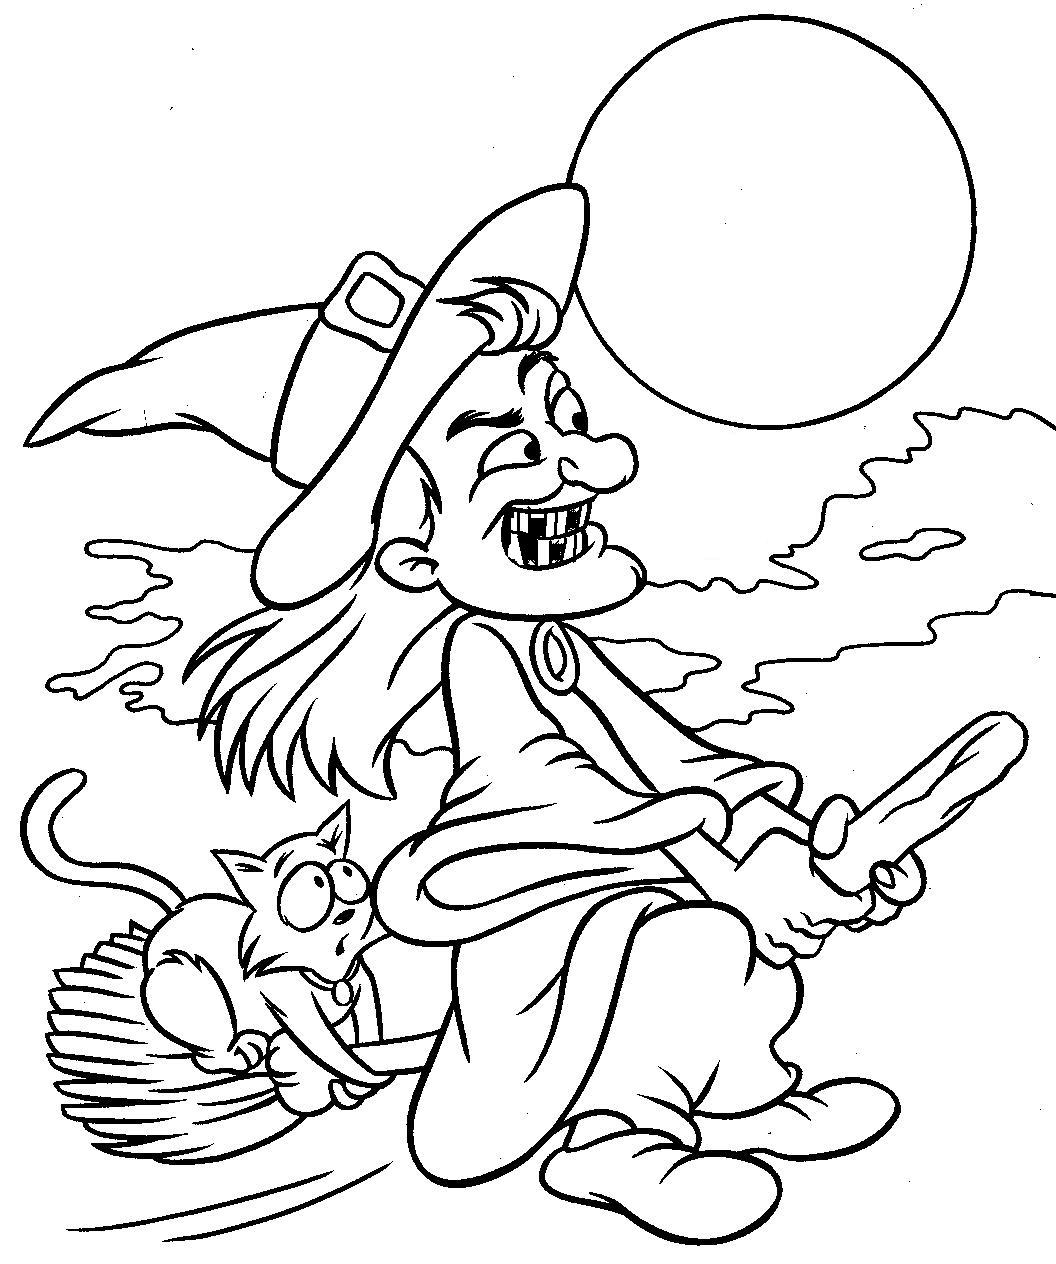 printable coloring pages halloween | coloring: Halloween coloring pics